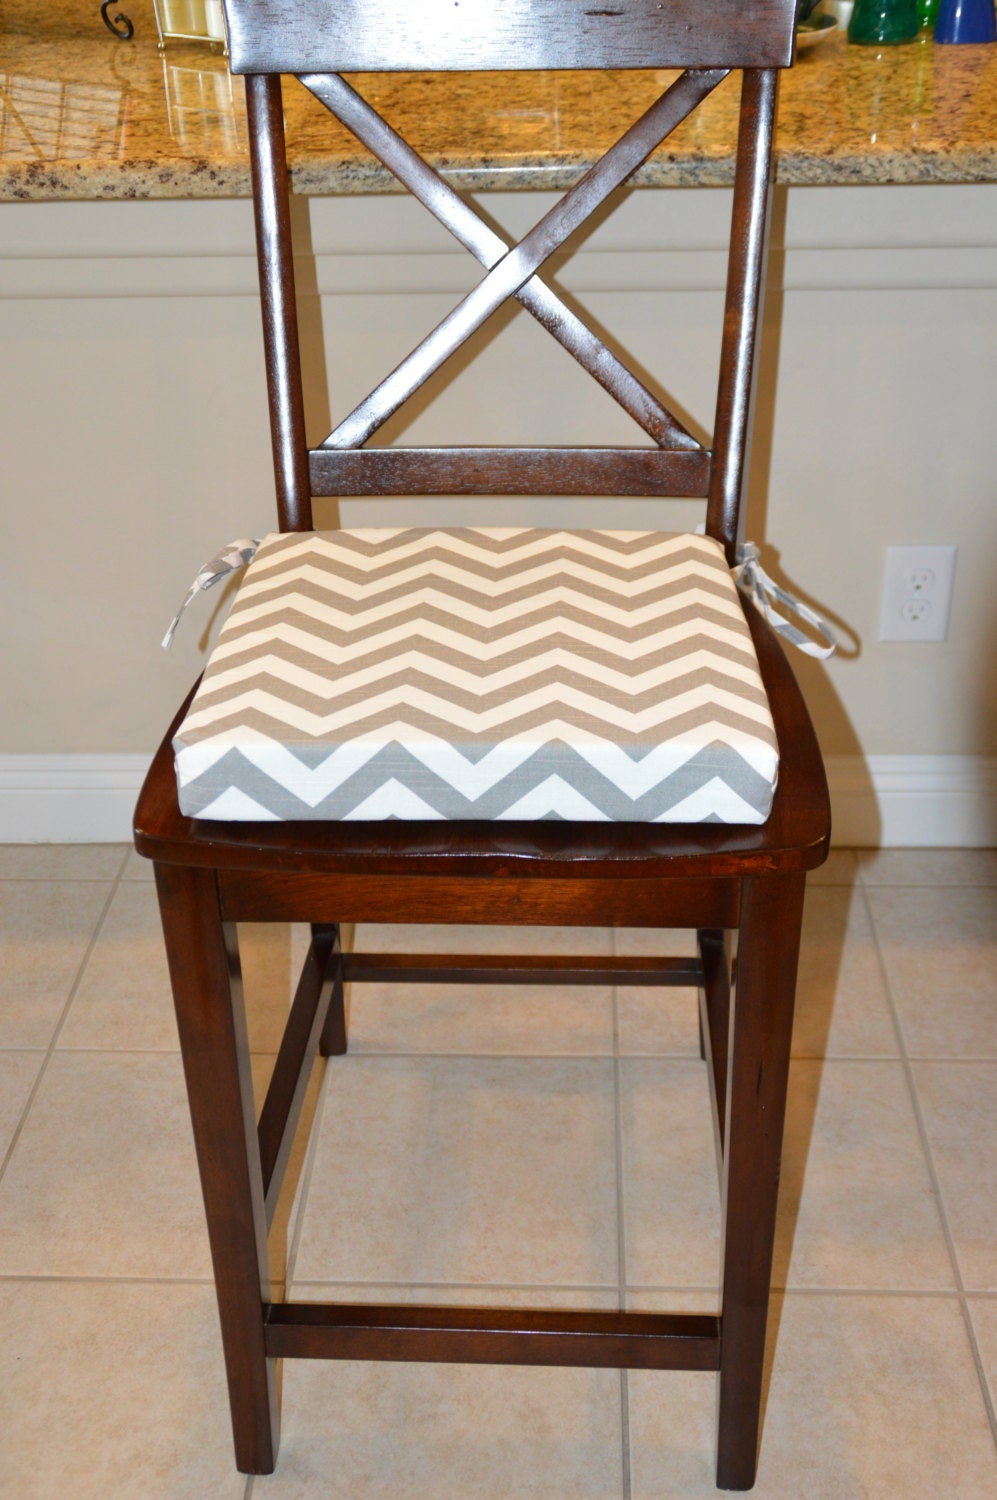 Gray and White Chevron Fabric Chair Cushion Cover Washable : ilfullxfull6961571232oth from www.etsy.com size 997 x 1500 jpeg 316kB